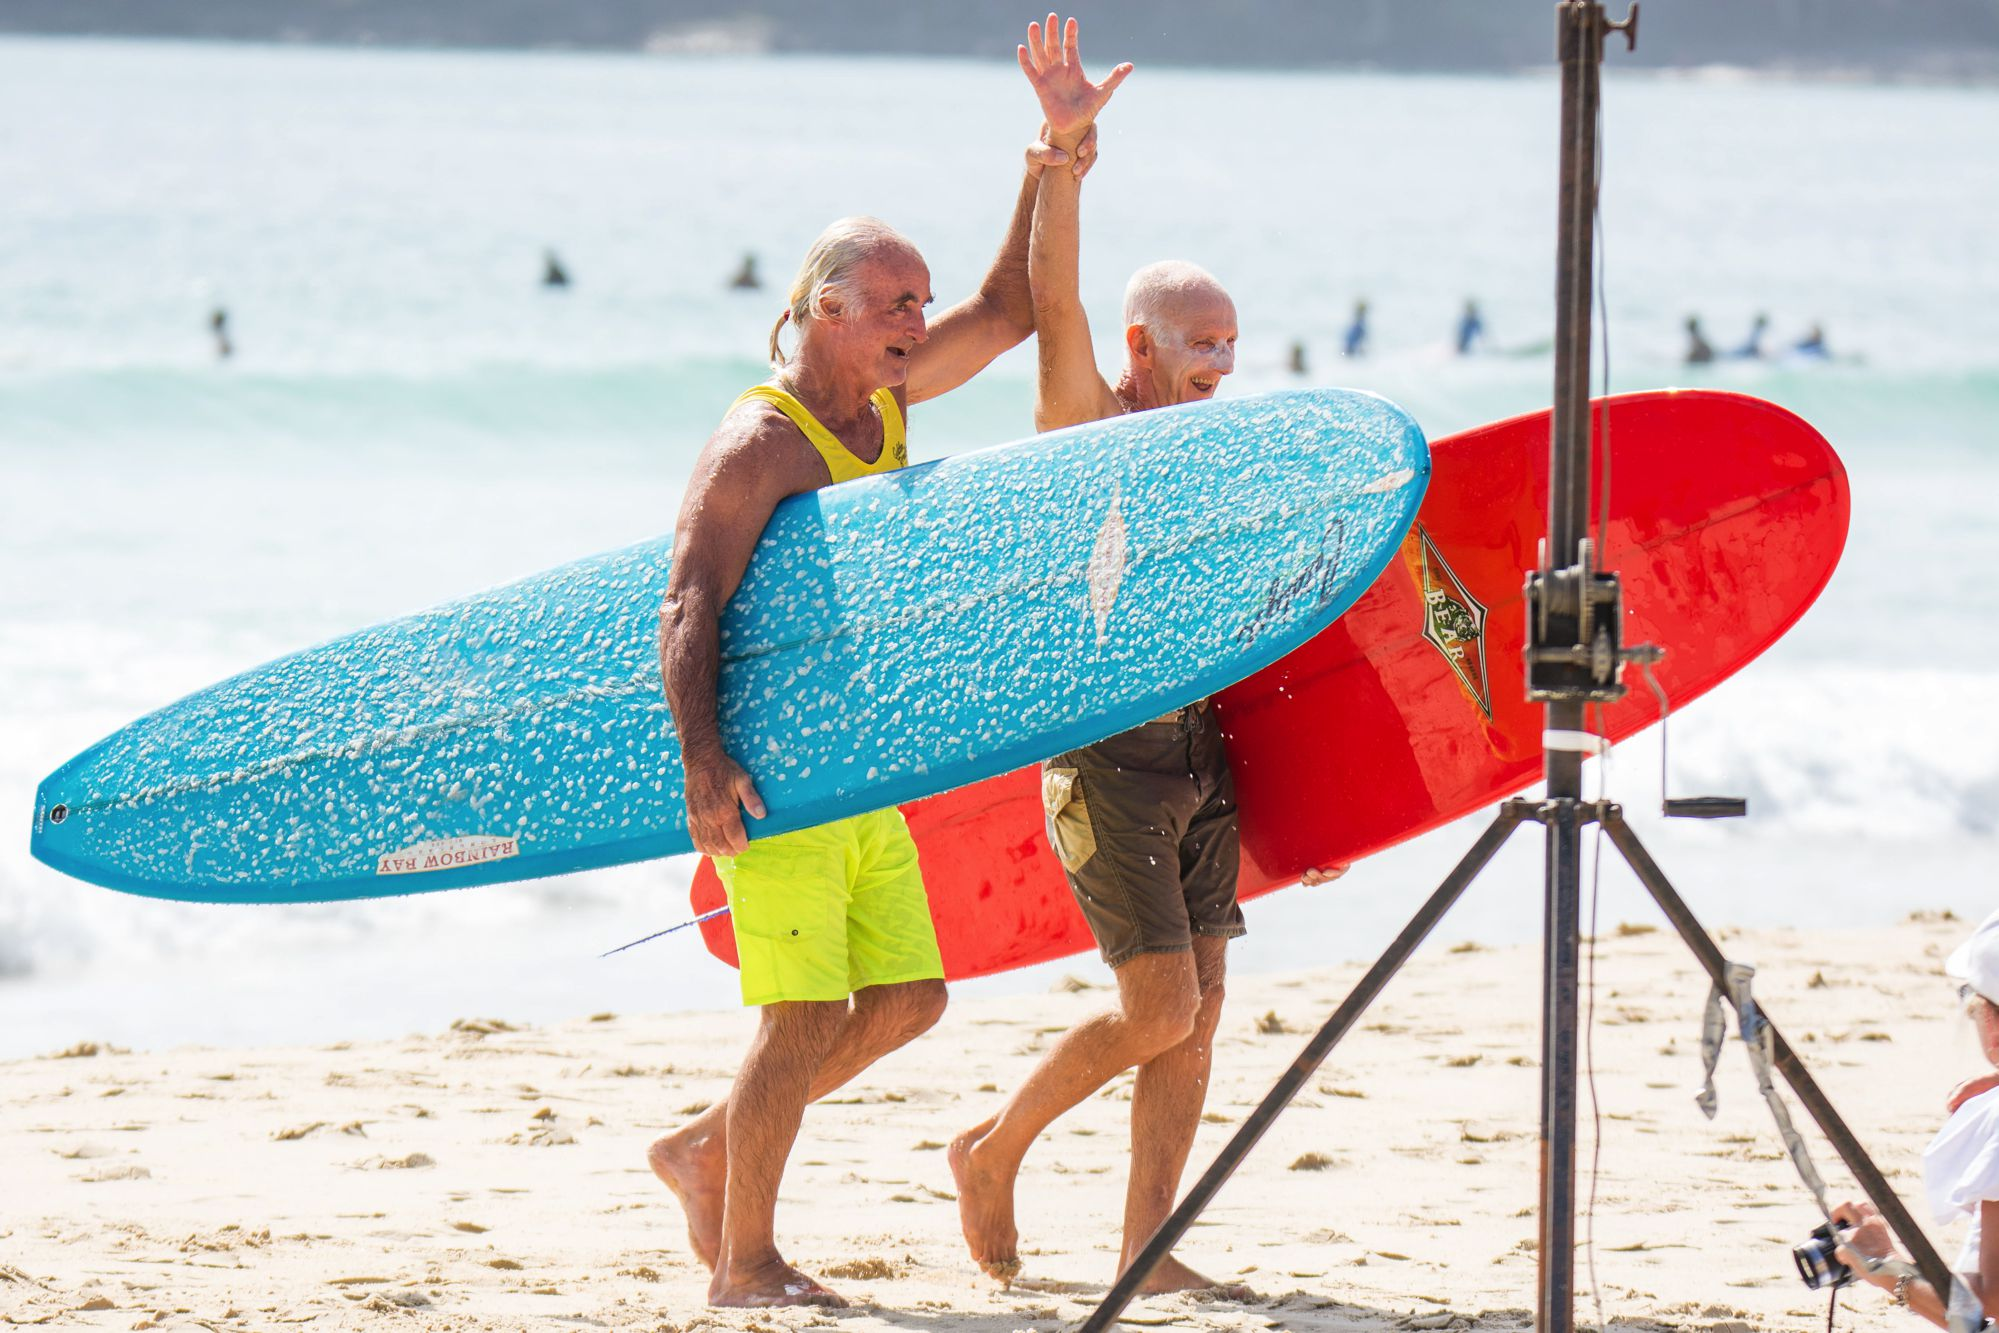 Image courtesy of Noosa Festival of Surfing